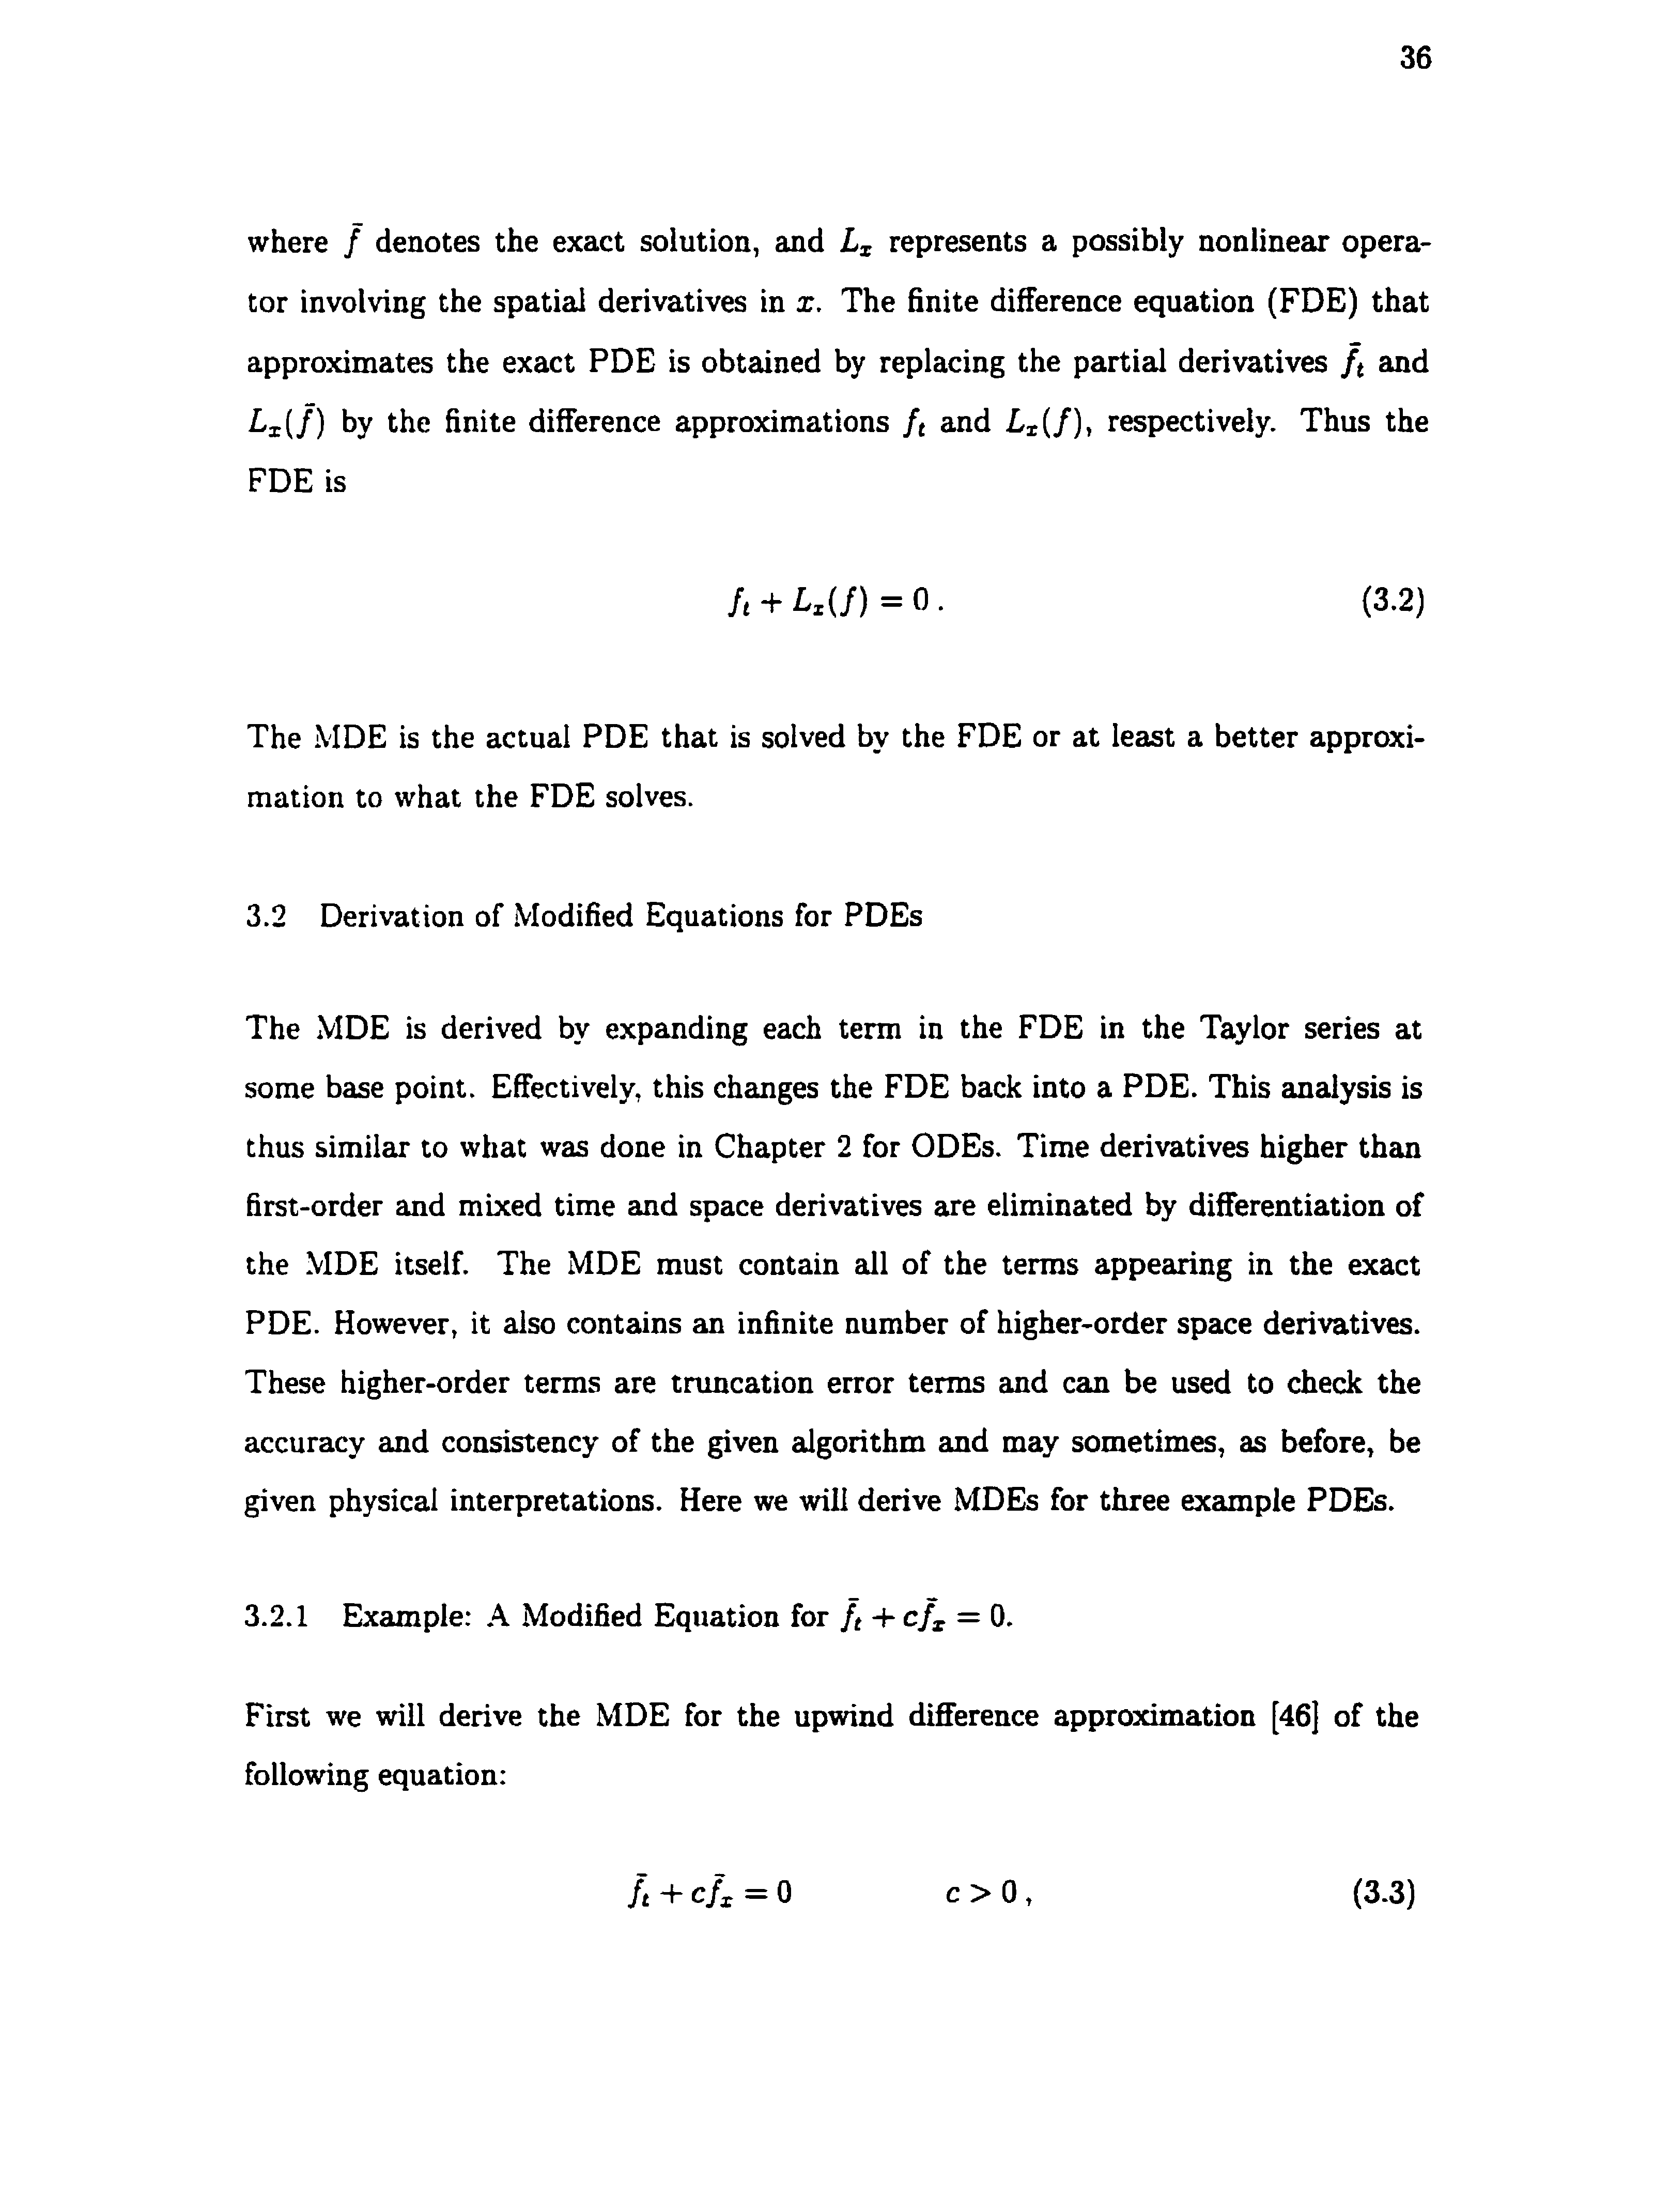 AN EXPLORATION OF COMPACT FINITE DIFFERENCE METHODS - PDF